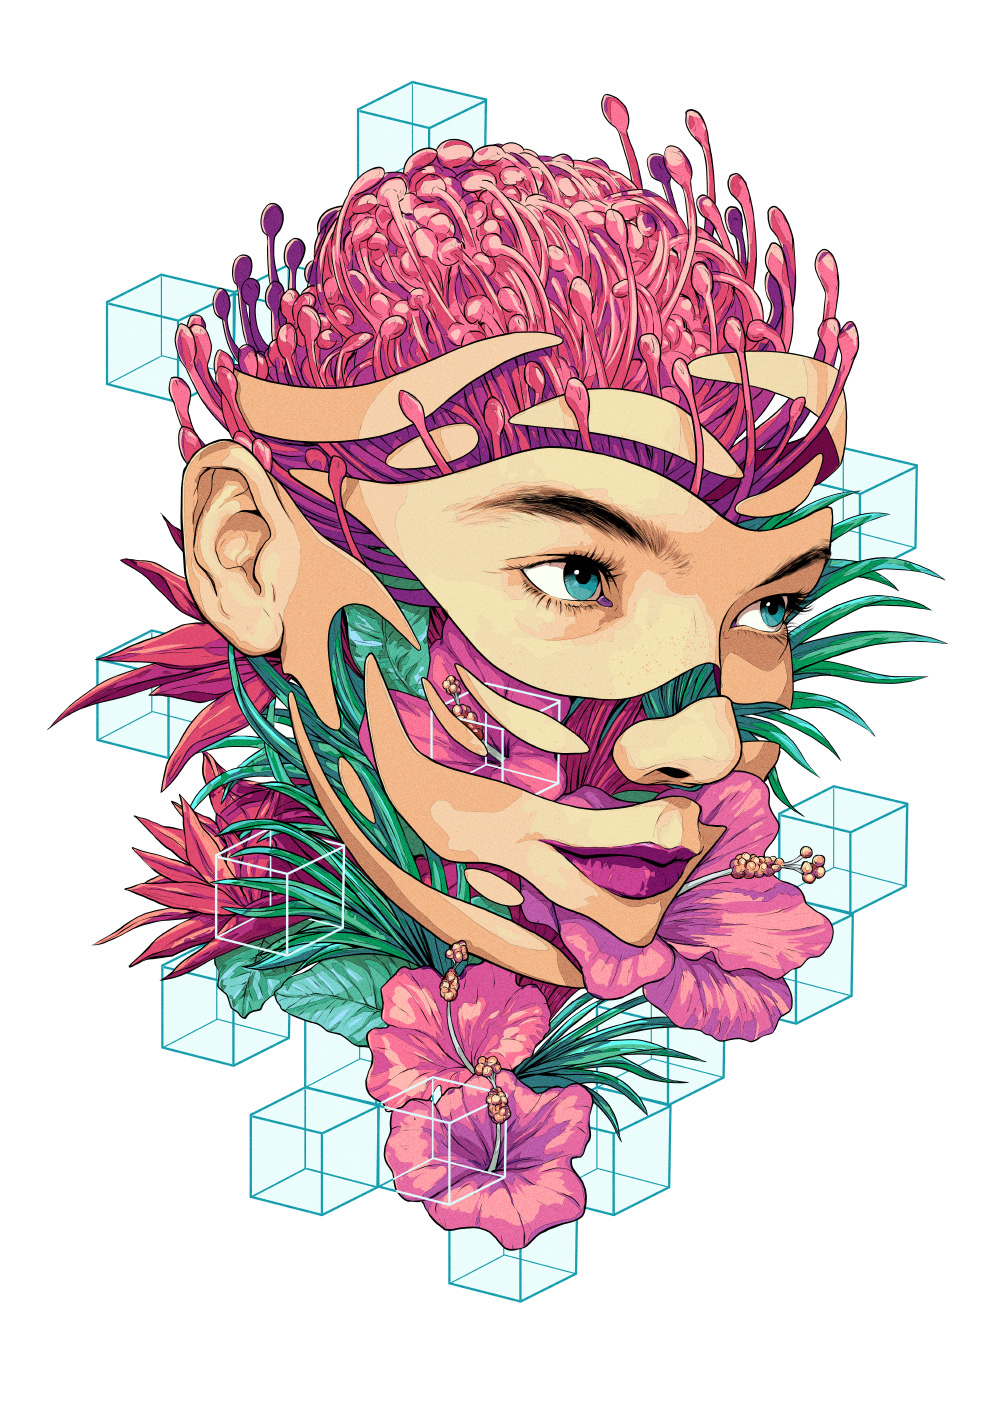 Read more about the article The Psychedelic Illustrations of Matt Chu